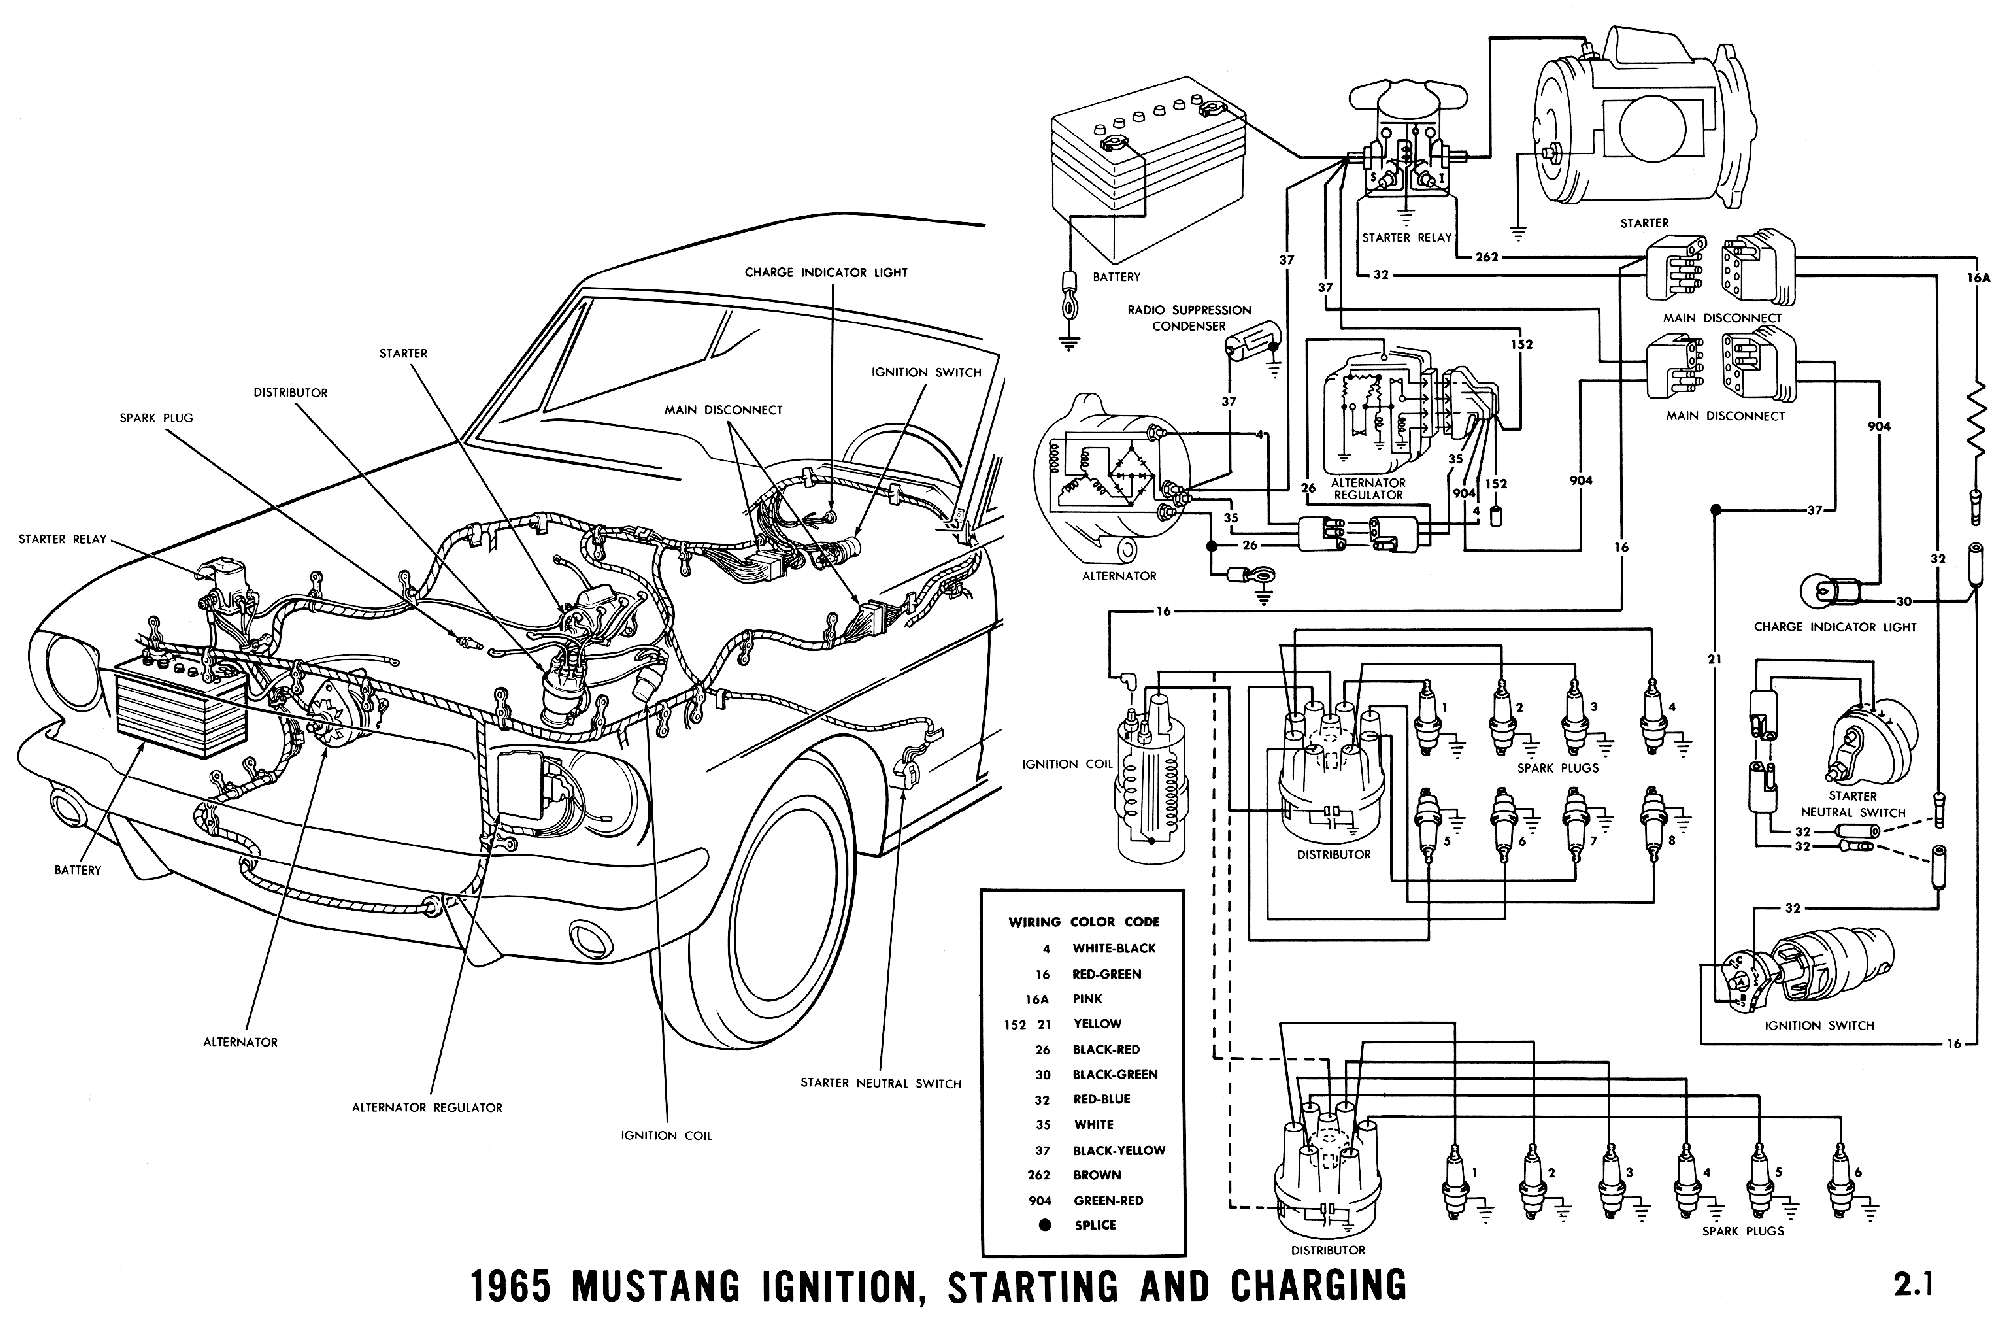 1965 Mustang Wiring Diagrams Average Joe Restoration Diagram As Well Push Button Start Stop Switch On Ignition Starting And Charging Pictorial Schematic